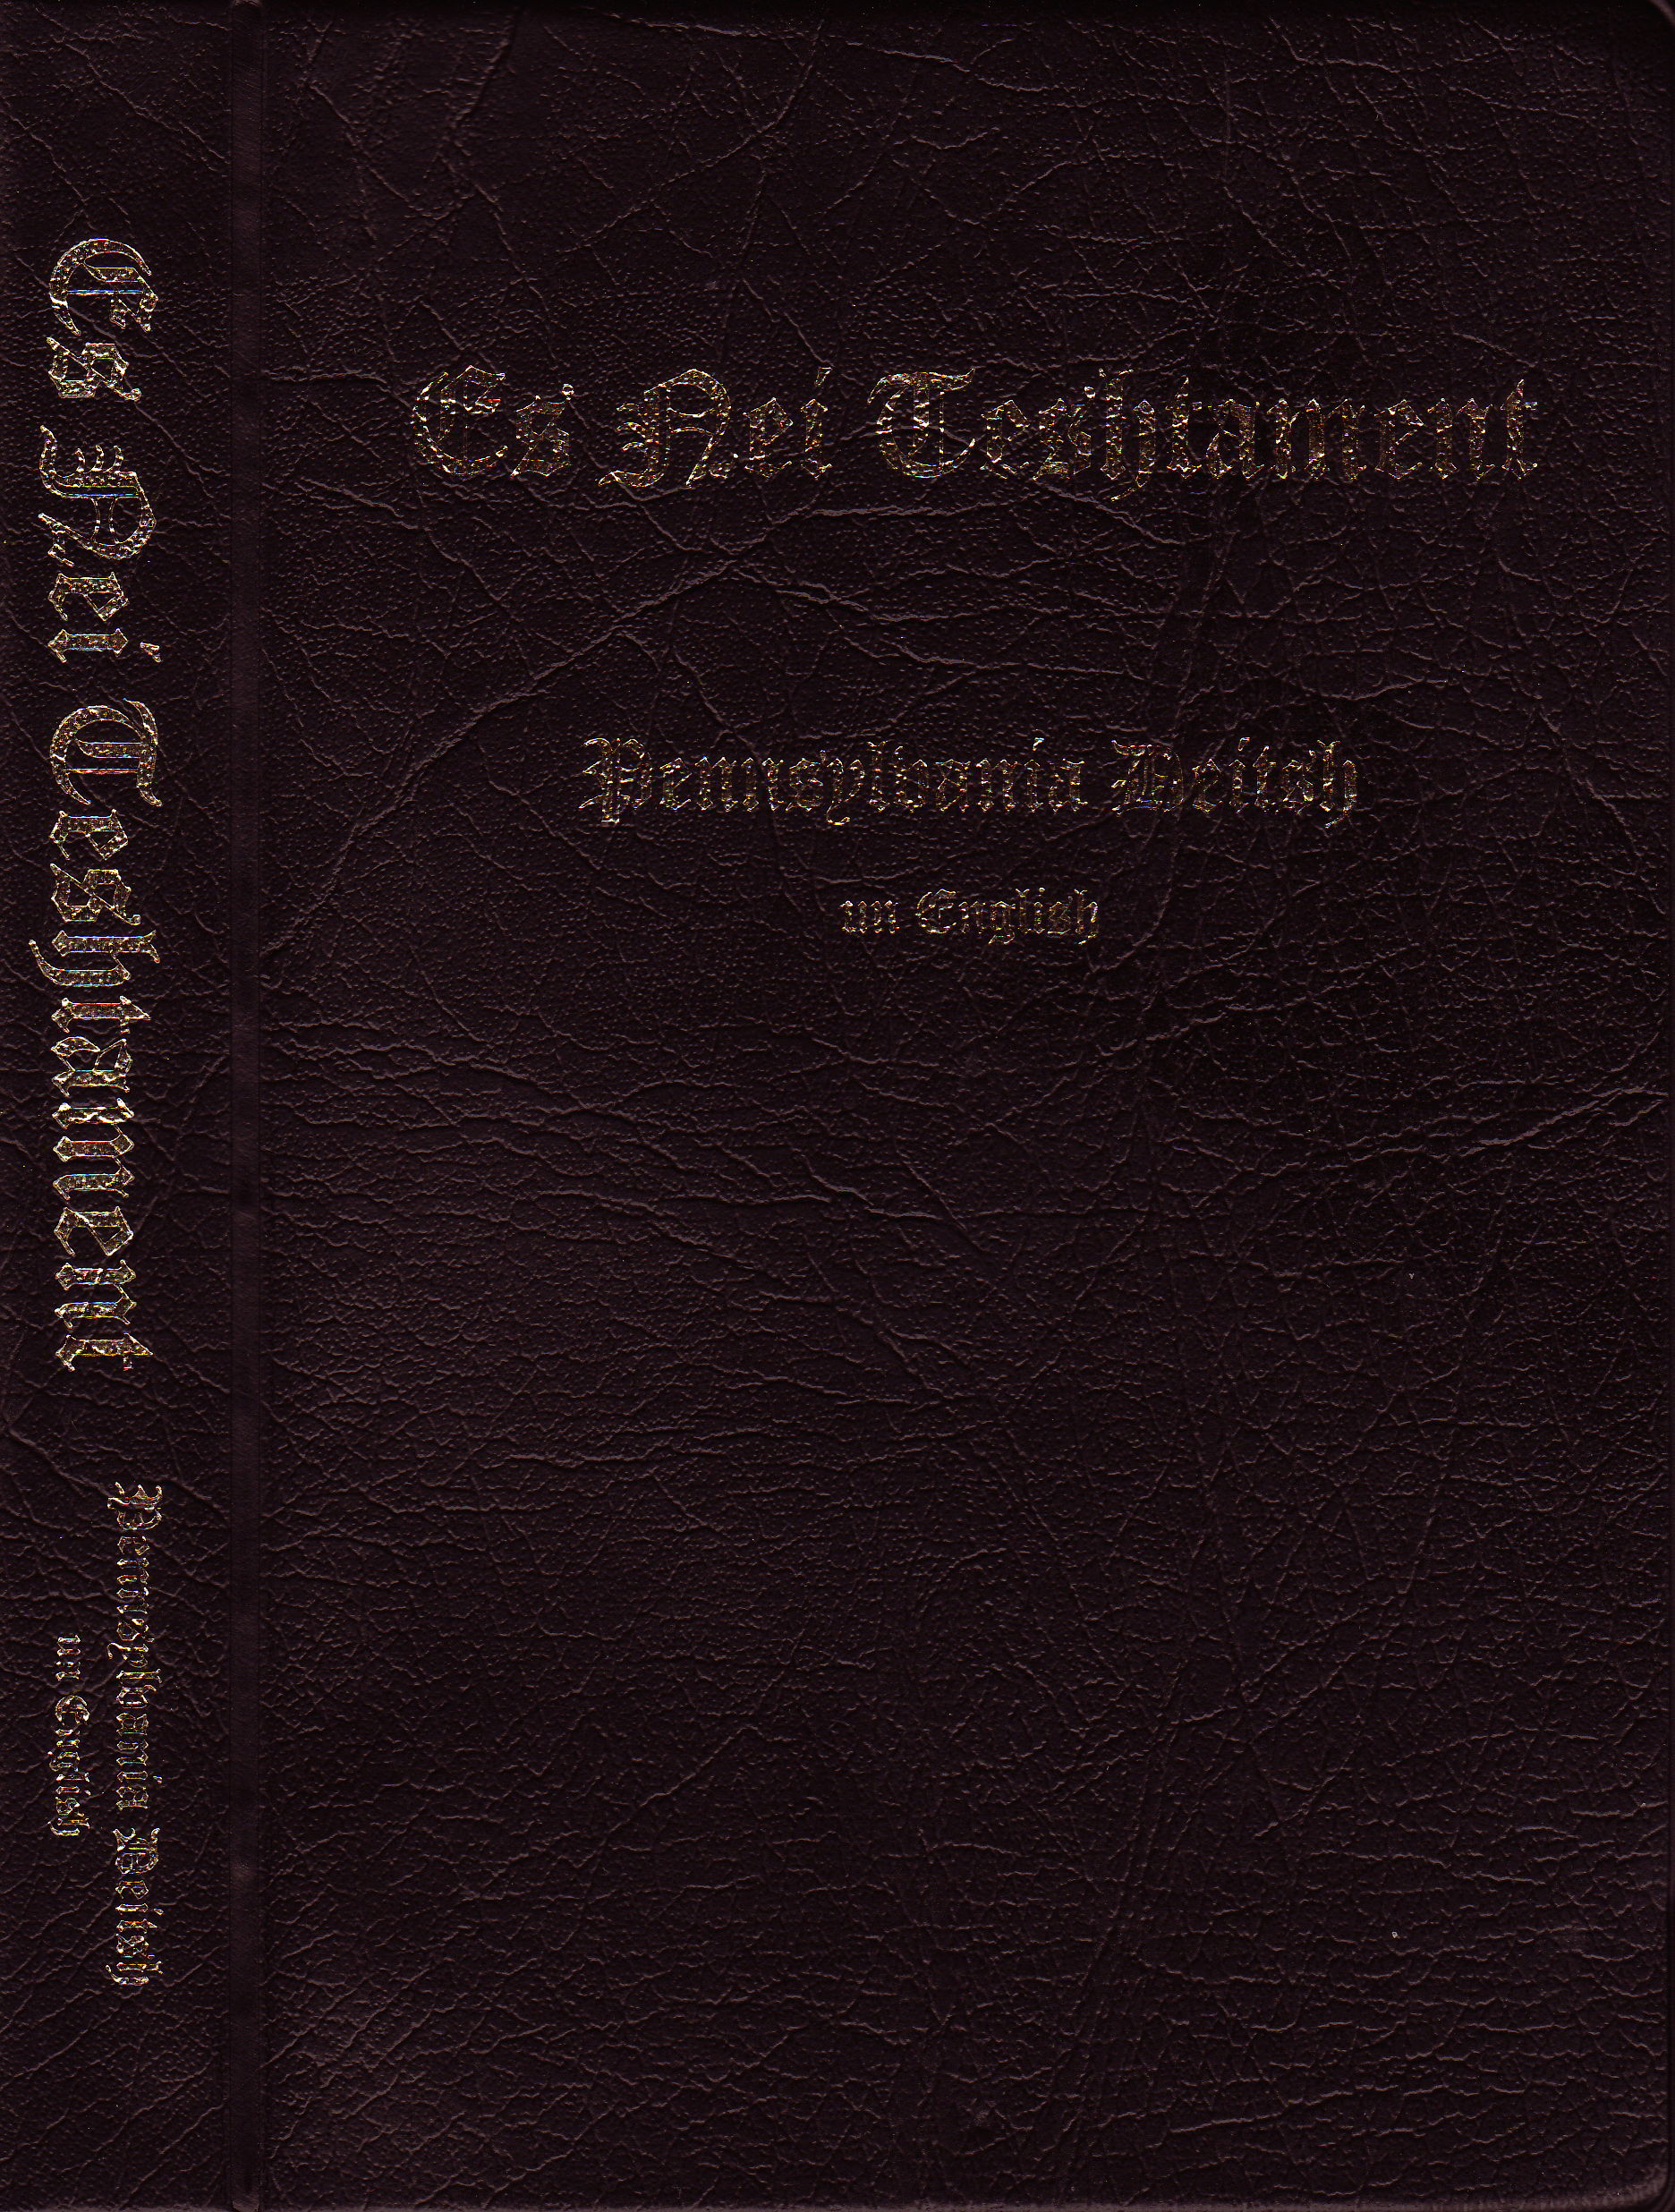 pennsylvania deitsh translation commitee internet bible catalog title page sample page location collection bibelarchiv birnbaum karlsruhe baden comments flexcover octavo 922 pp